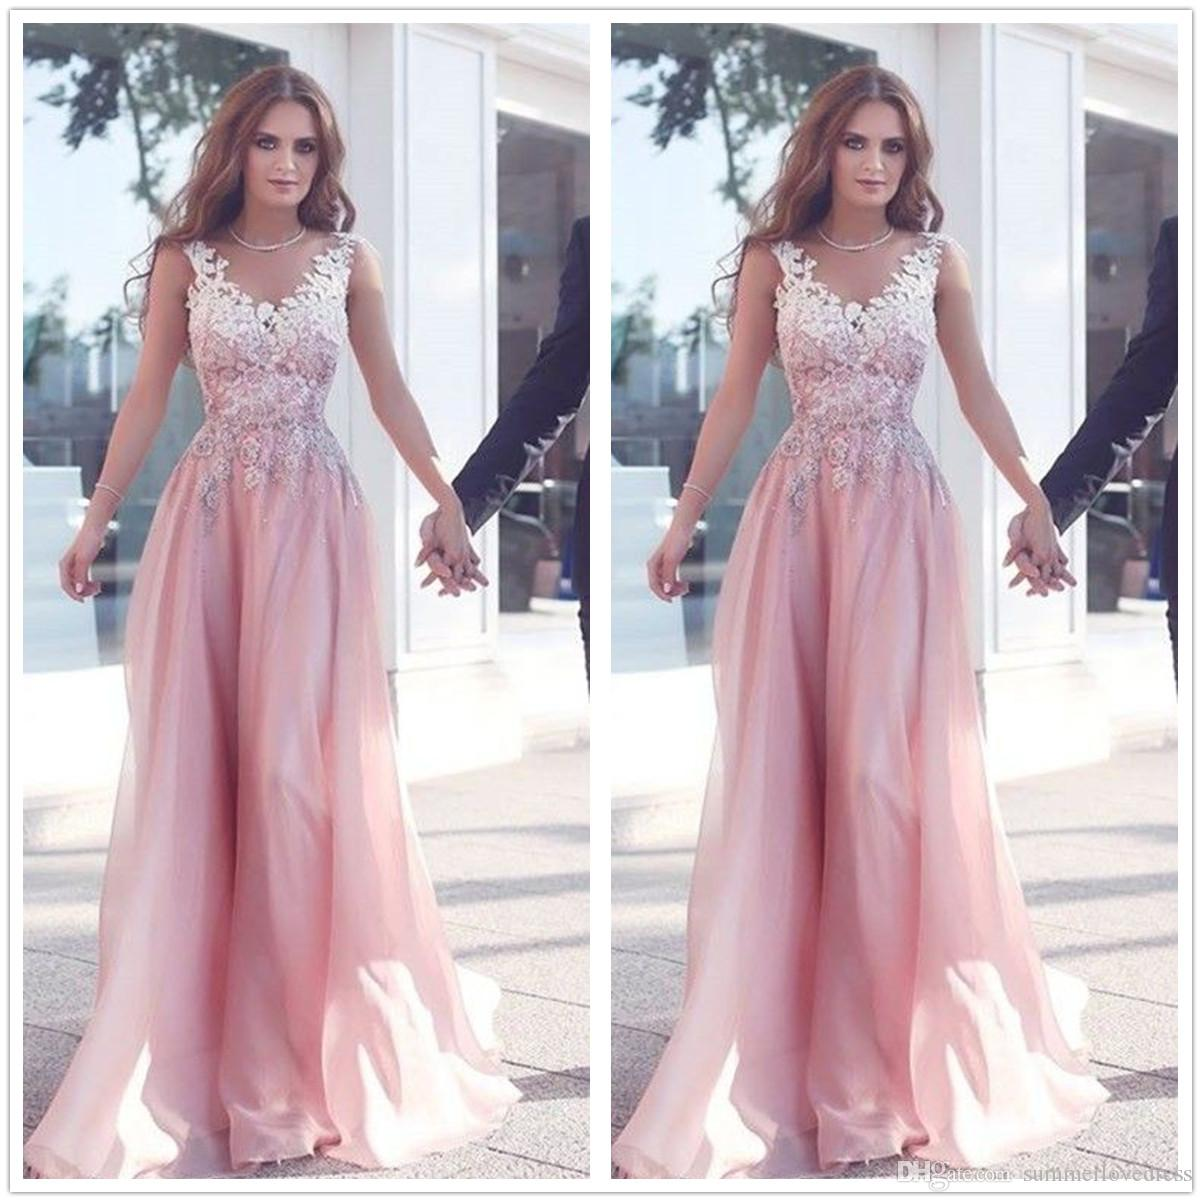 9125ffbf44a 2016 New Sexy Arabic Round Neck Lace Long Prom Dresses Pink Organza Lace  Applique A Line Floor Length Party Evening Dresses Trendy Prom Dresses Baby  Doll ...